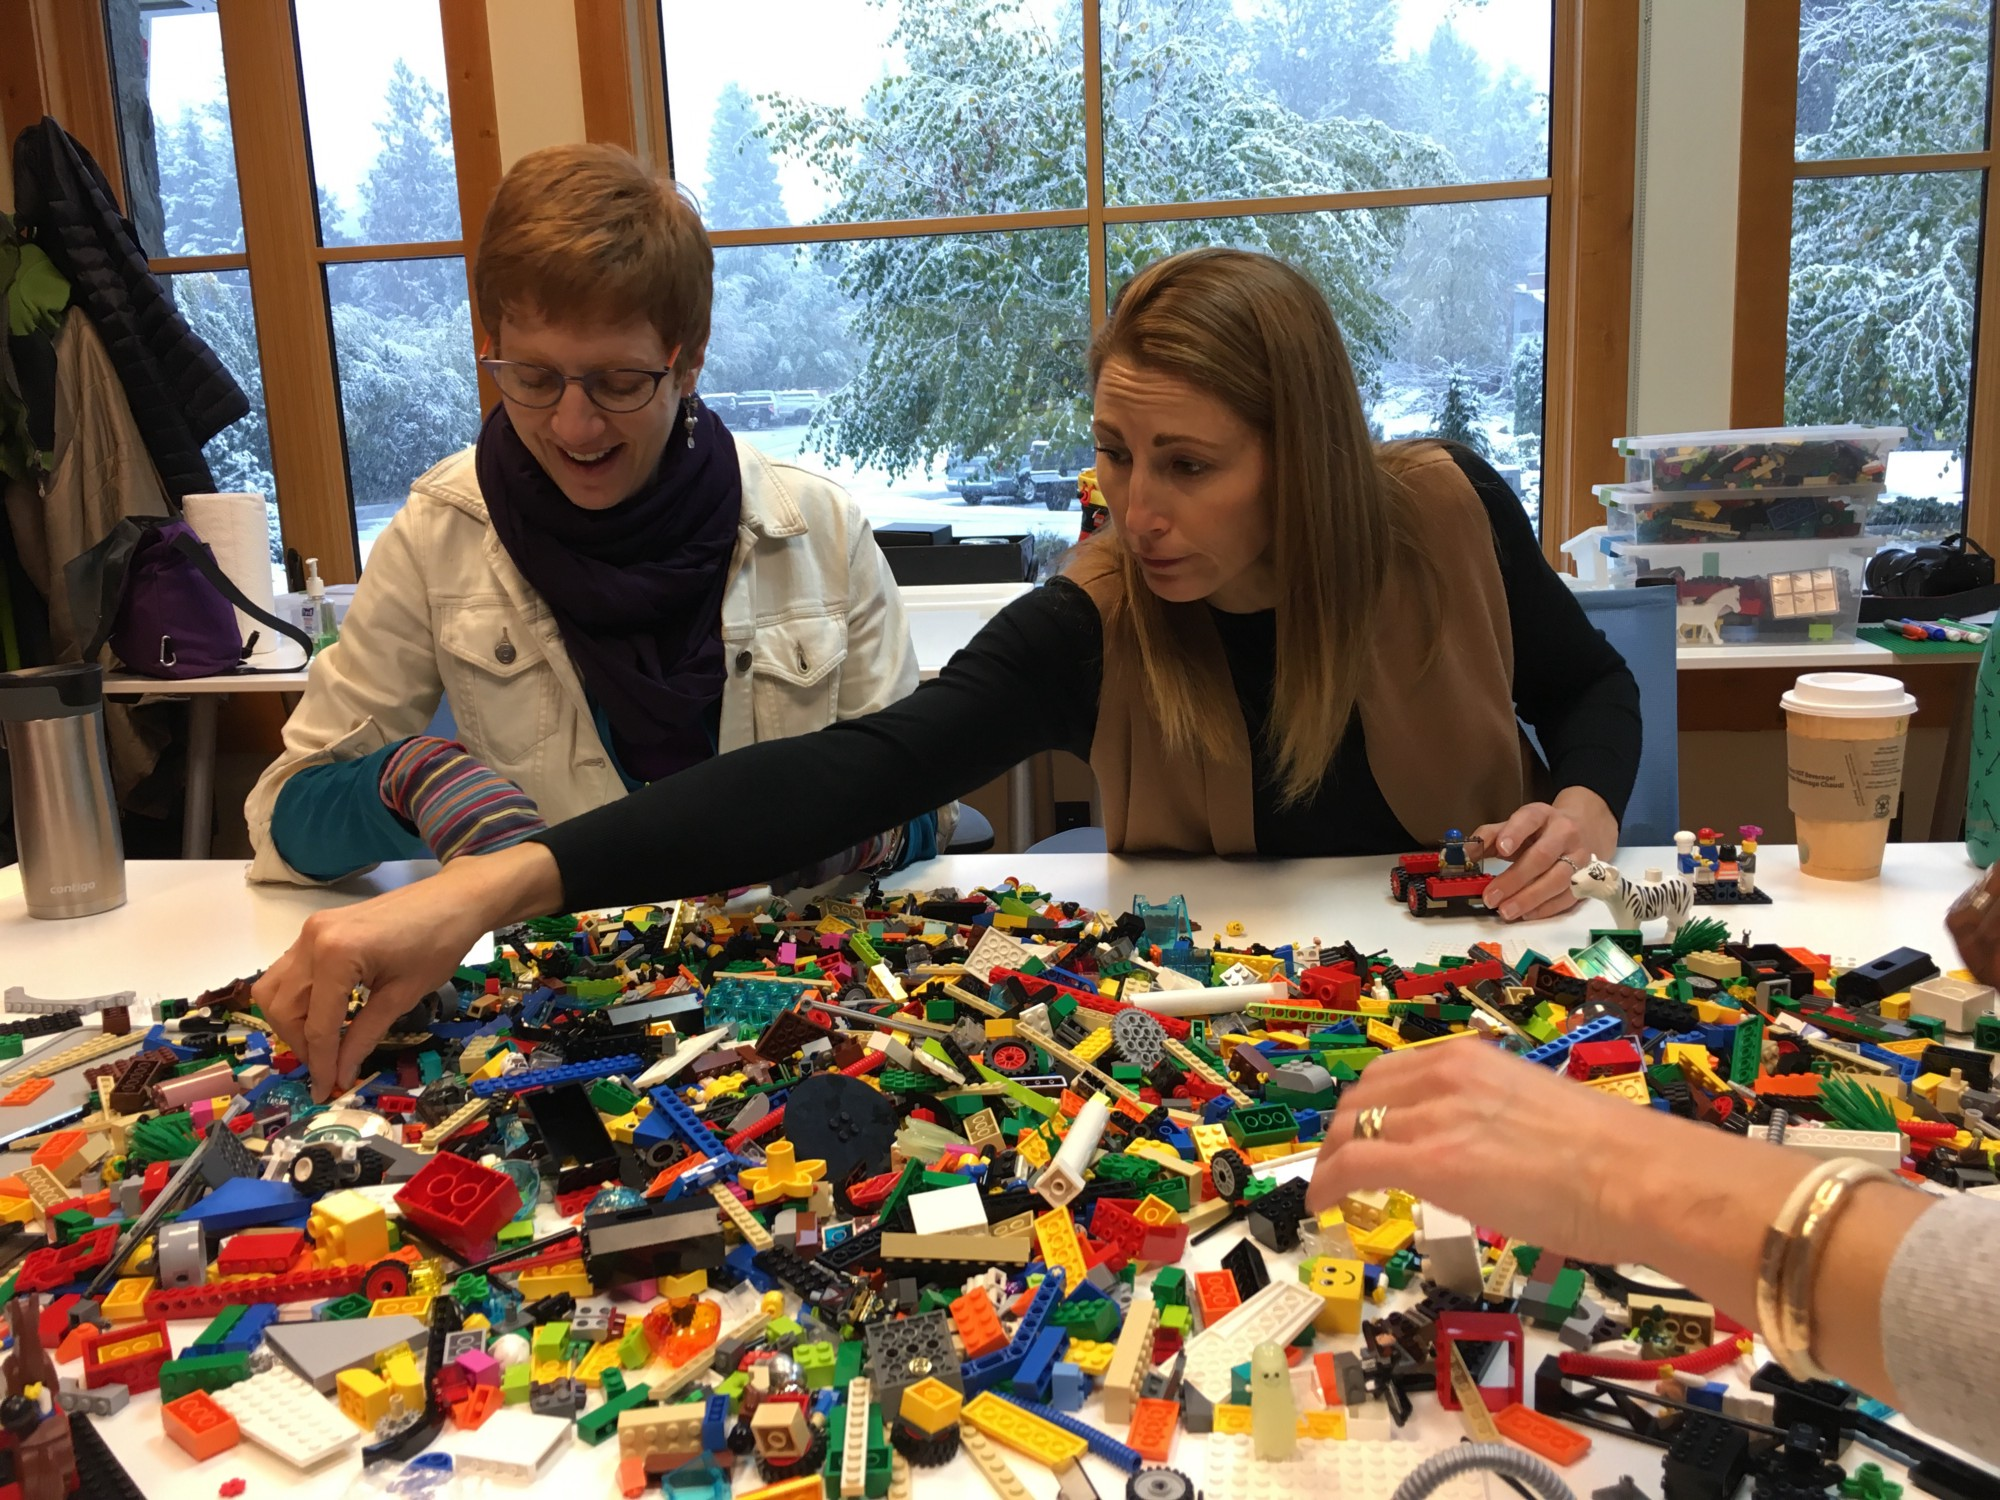 Lego designers: the reason for popularity